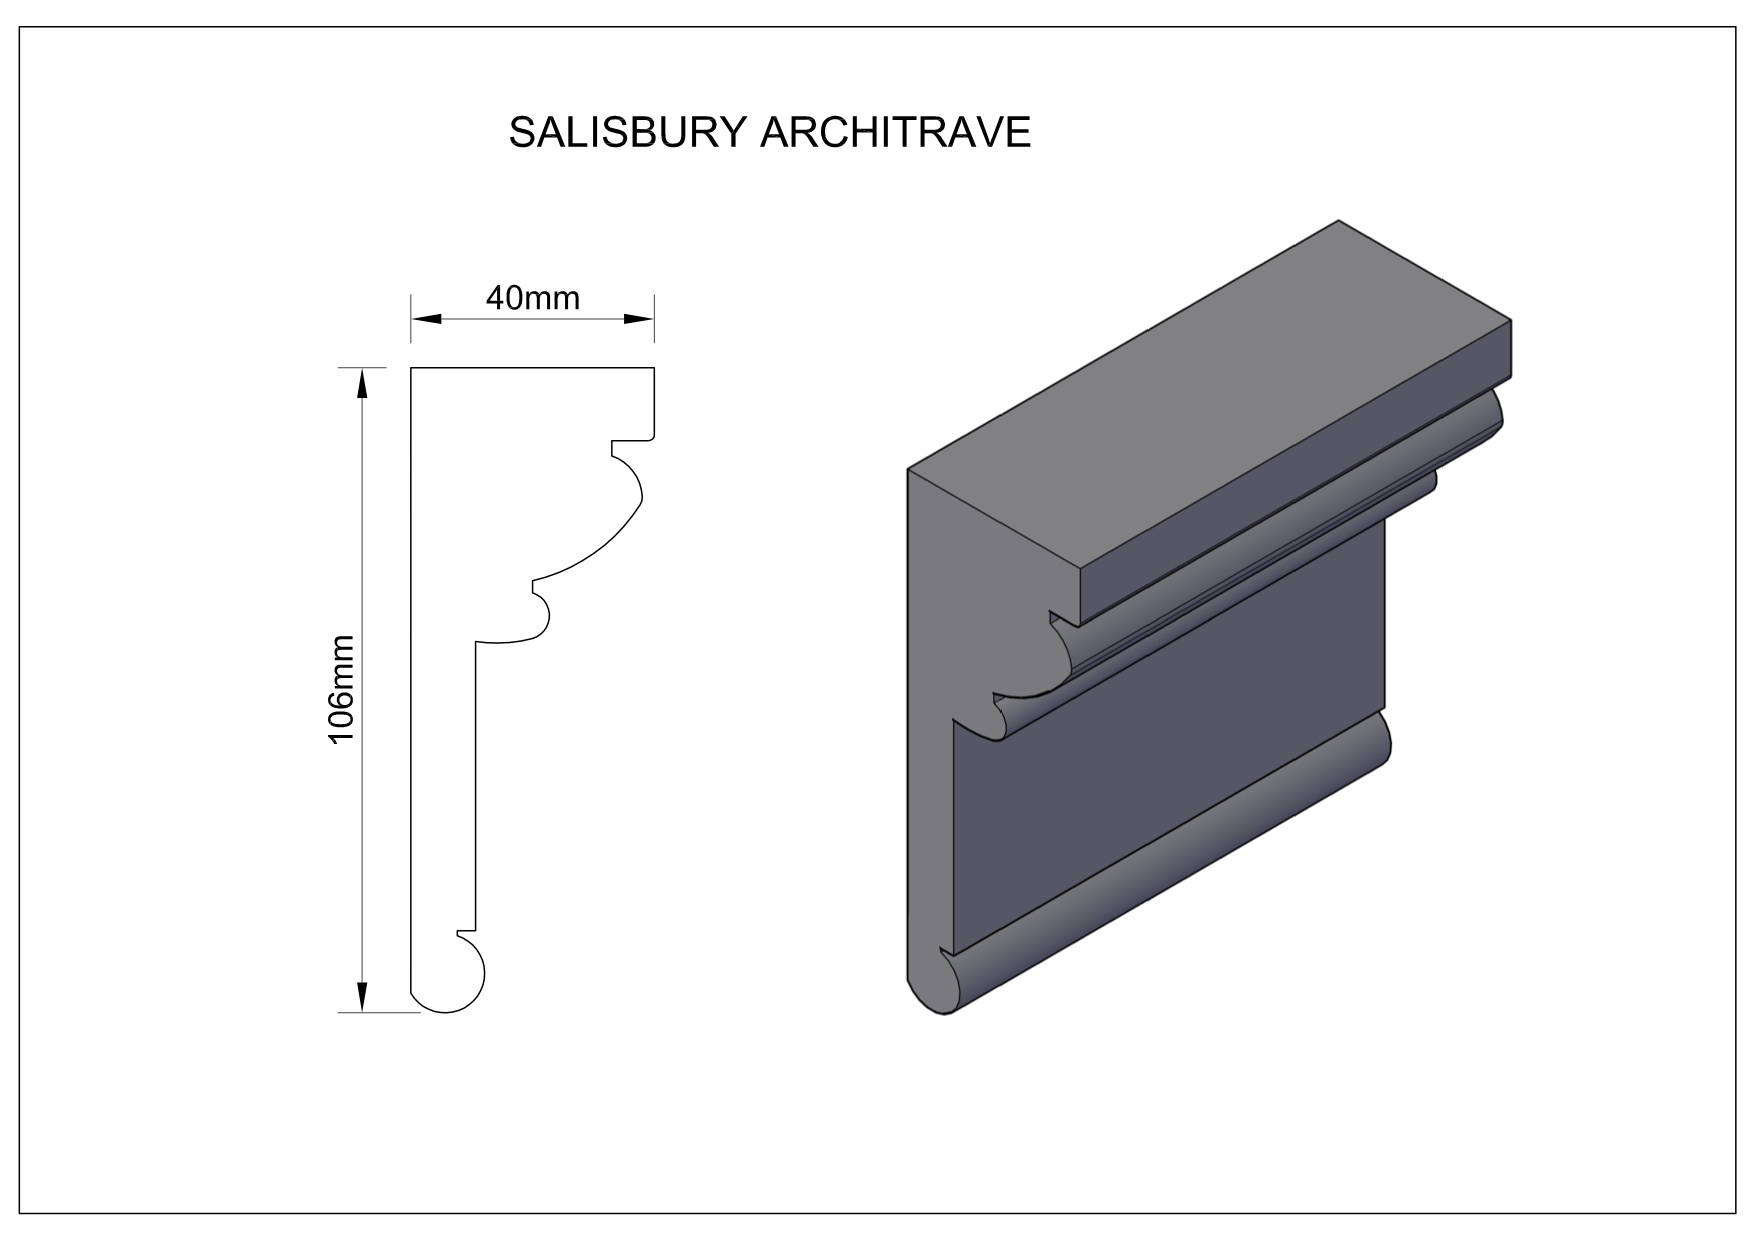 Salisbury-Architrave large